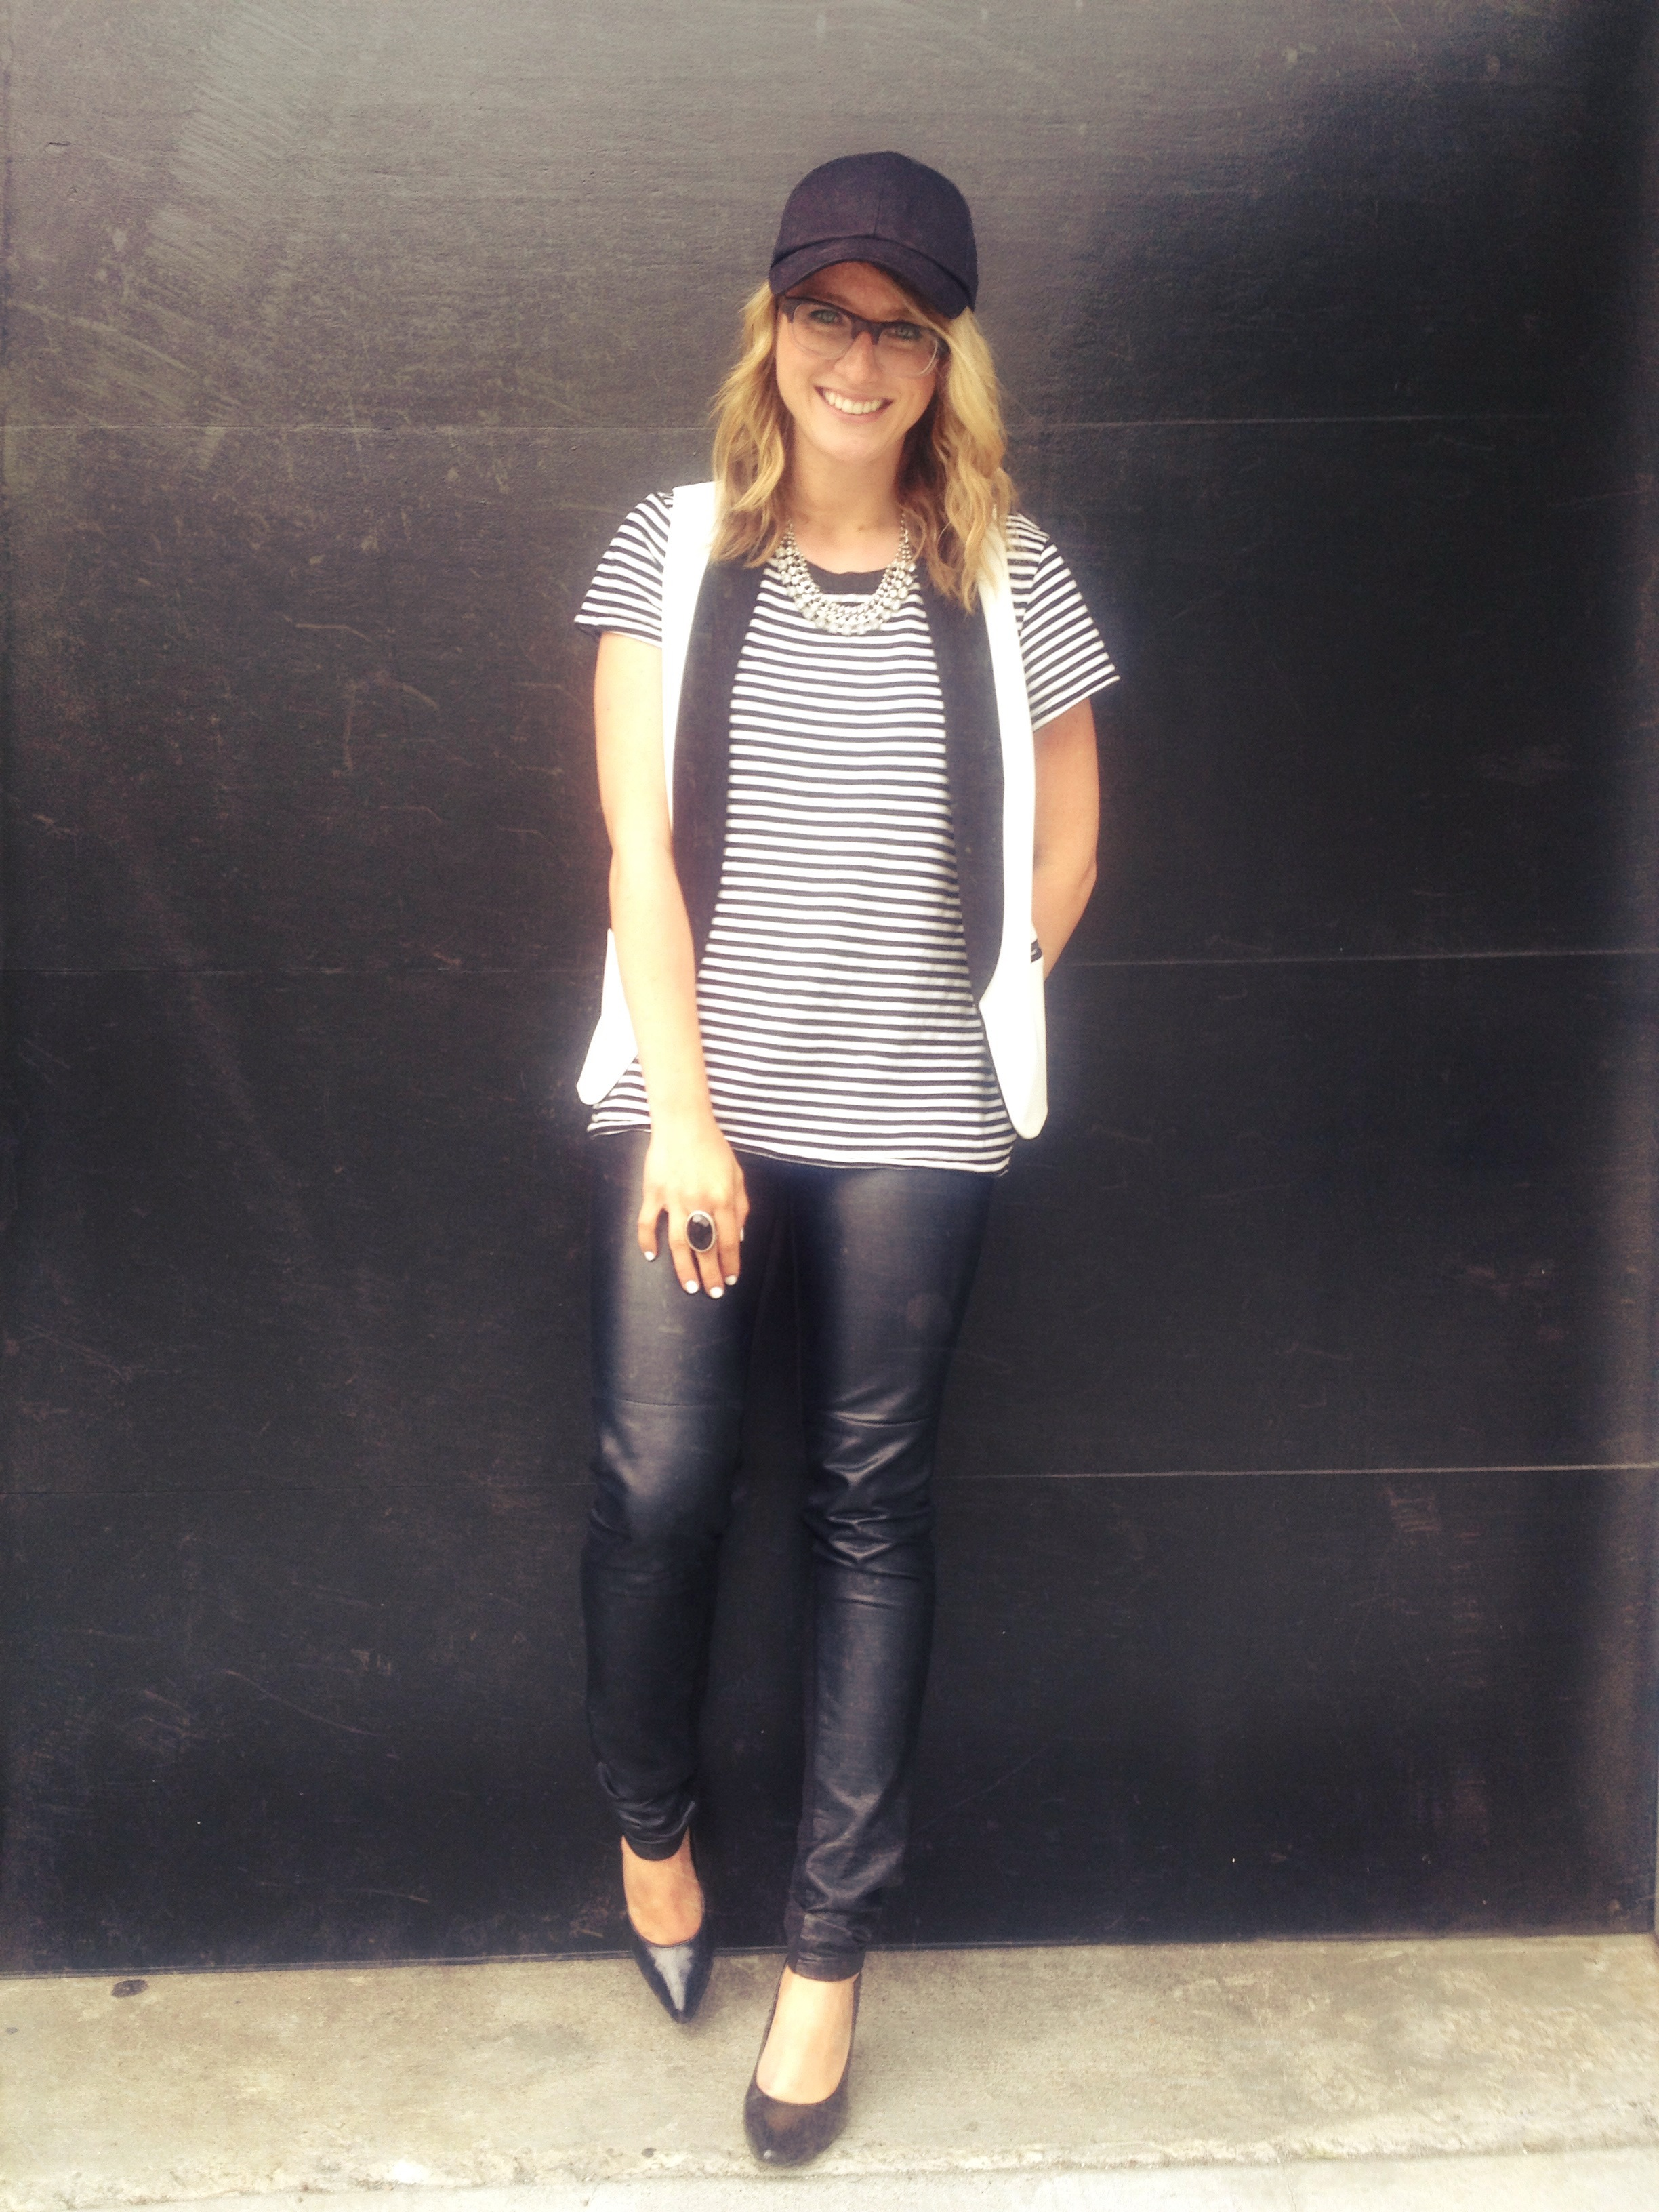 Leather Leggings: H&M | Striped Shirt: Gap | Vest: F21 | Necklace: F21 | Hat: H&M | Shoes:  Target | Ring: F21